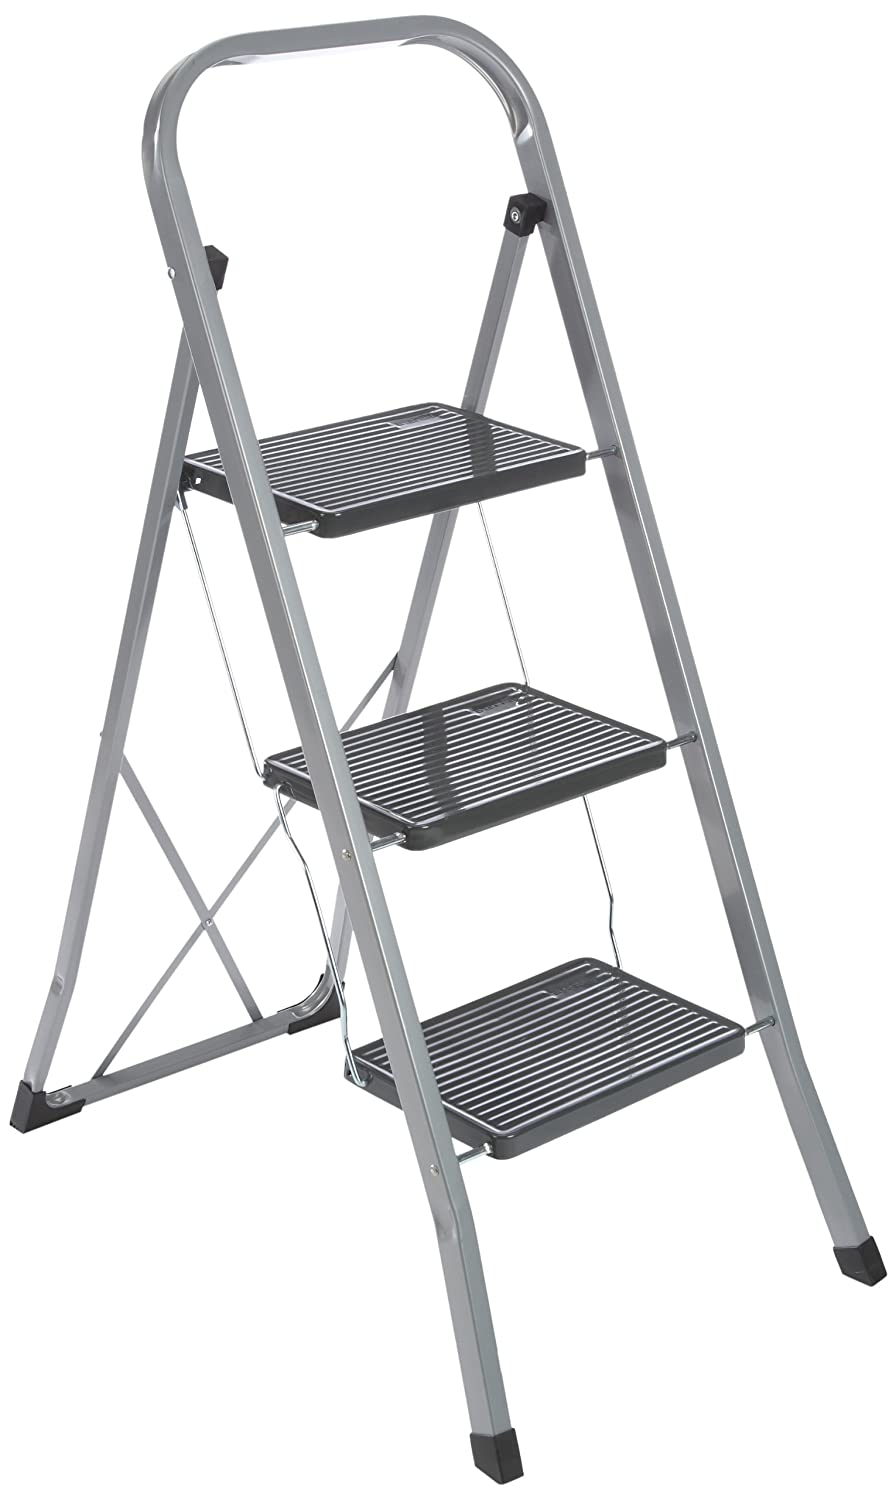 axentia 3 Step Ladder, Heavy Duty, Portable, Folding Ladder, Steel Step Ladder Stool, Non-Slip Steps, 150kg Capacity, Stepladder Handrail, approx. 46 x 71 x 104 cm, Silver-black 251202